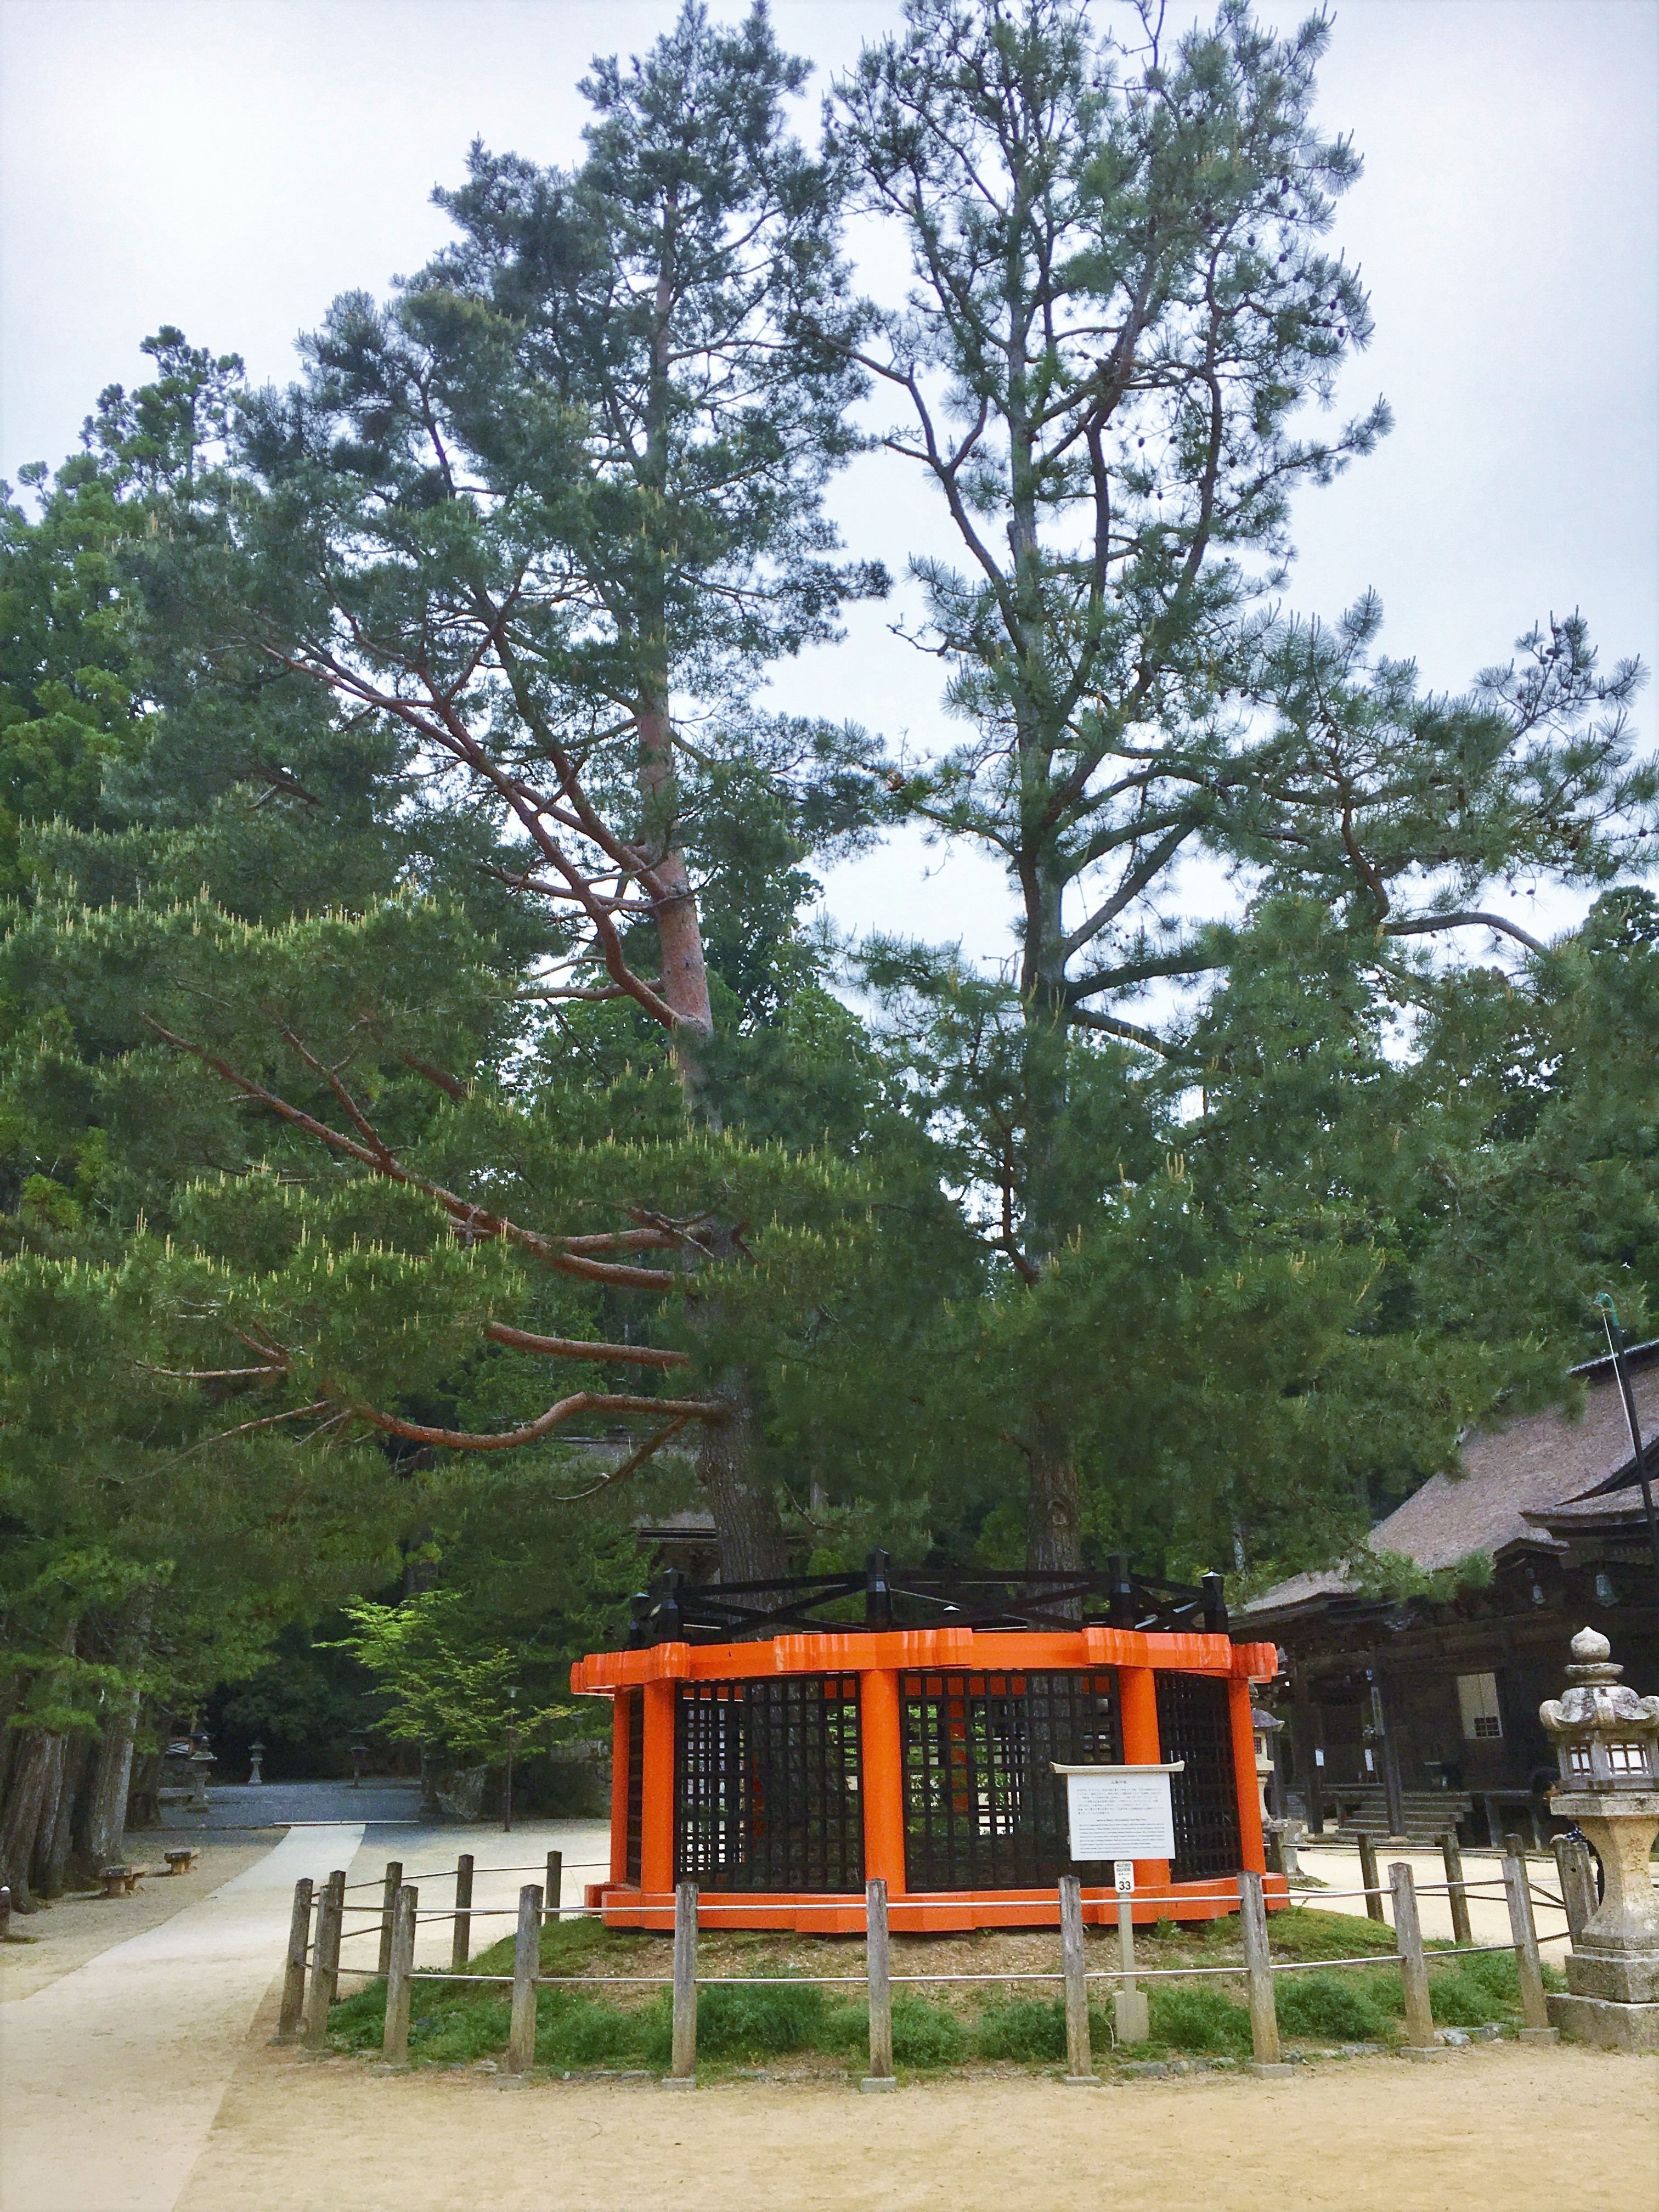 Sanko no Matsu pine tree in the Danjo Garan at Koyasan